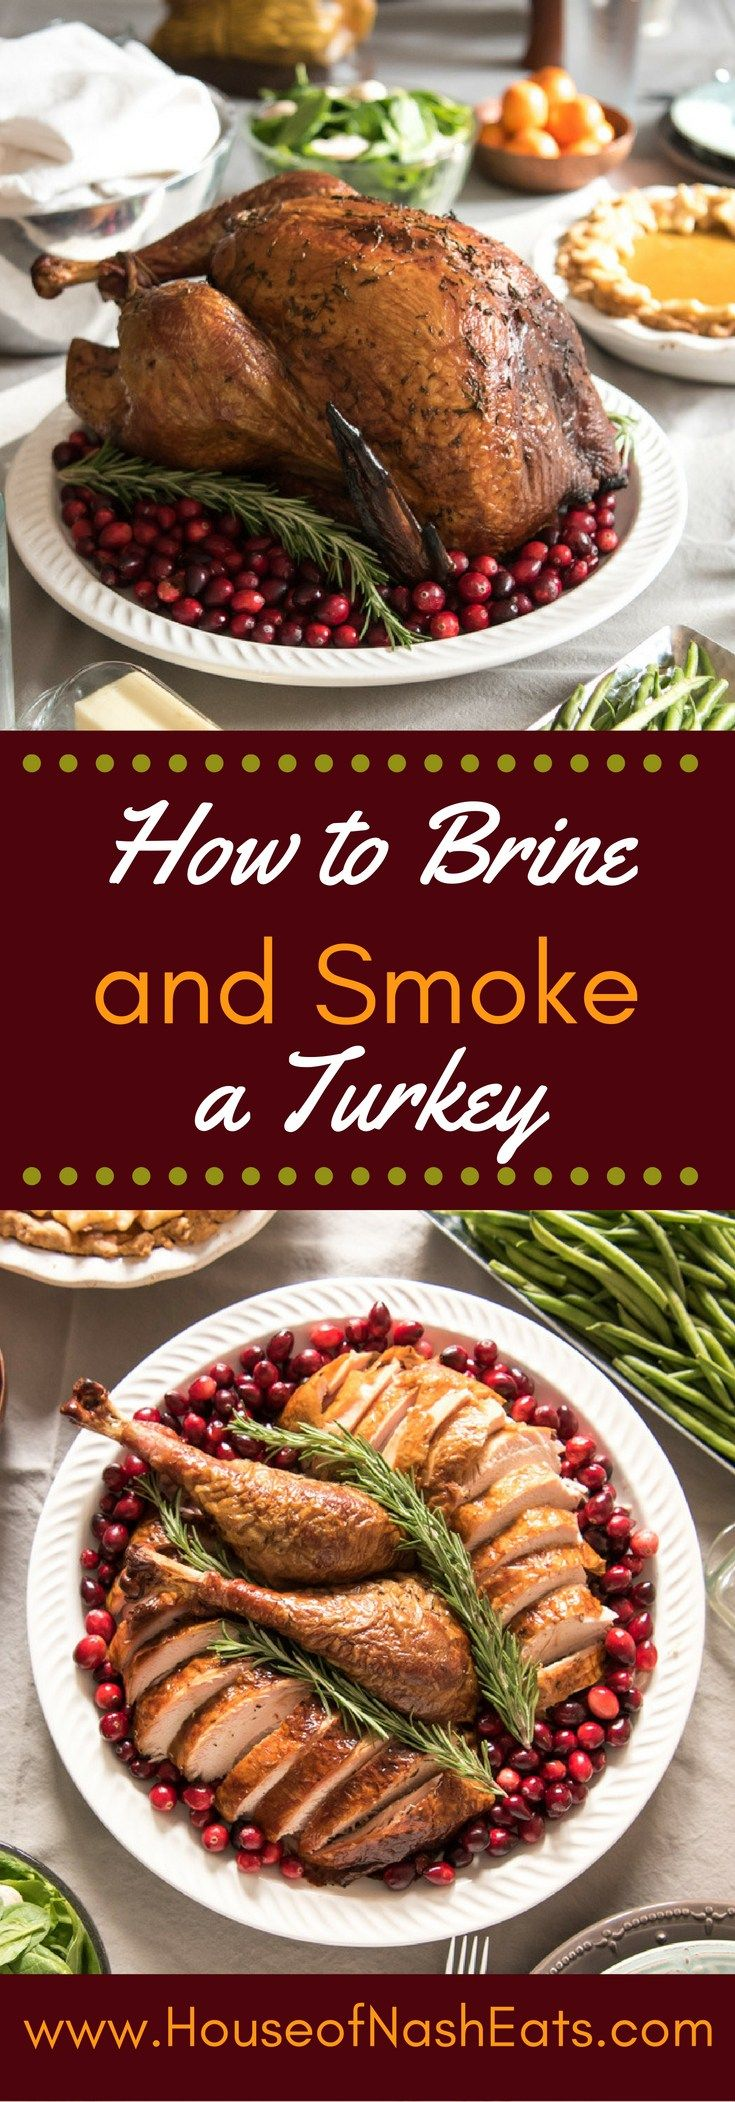 The juiciest, most succulent smoked turkey ever! Brining your bird helps it stay extra moist, while the smoke from the applewood creates the most flavorful turkey you will ever try!